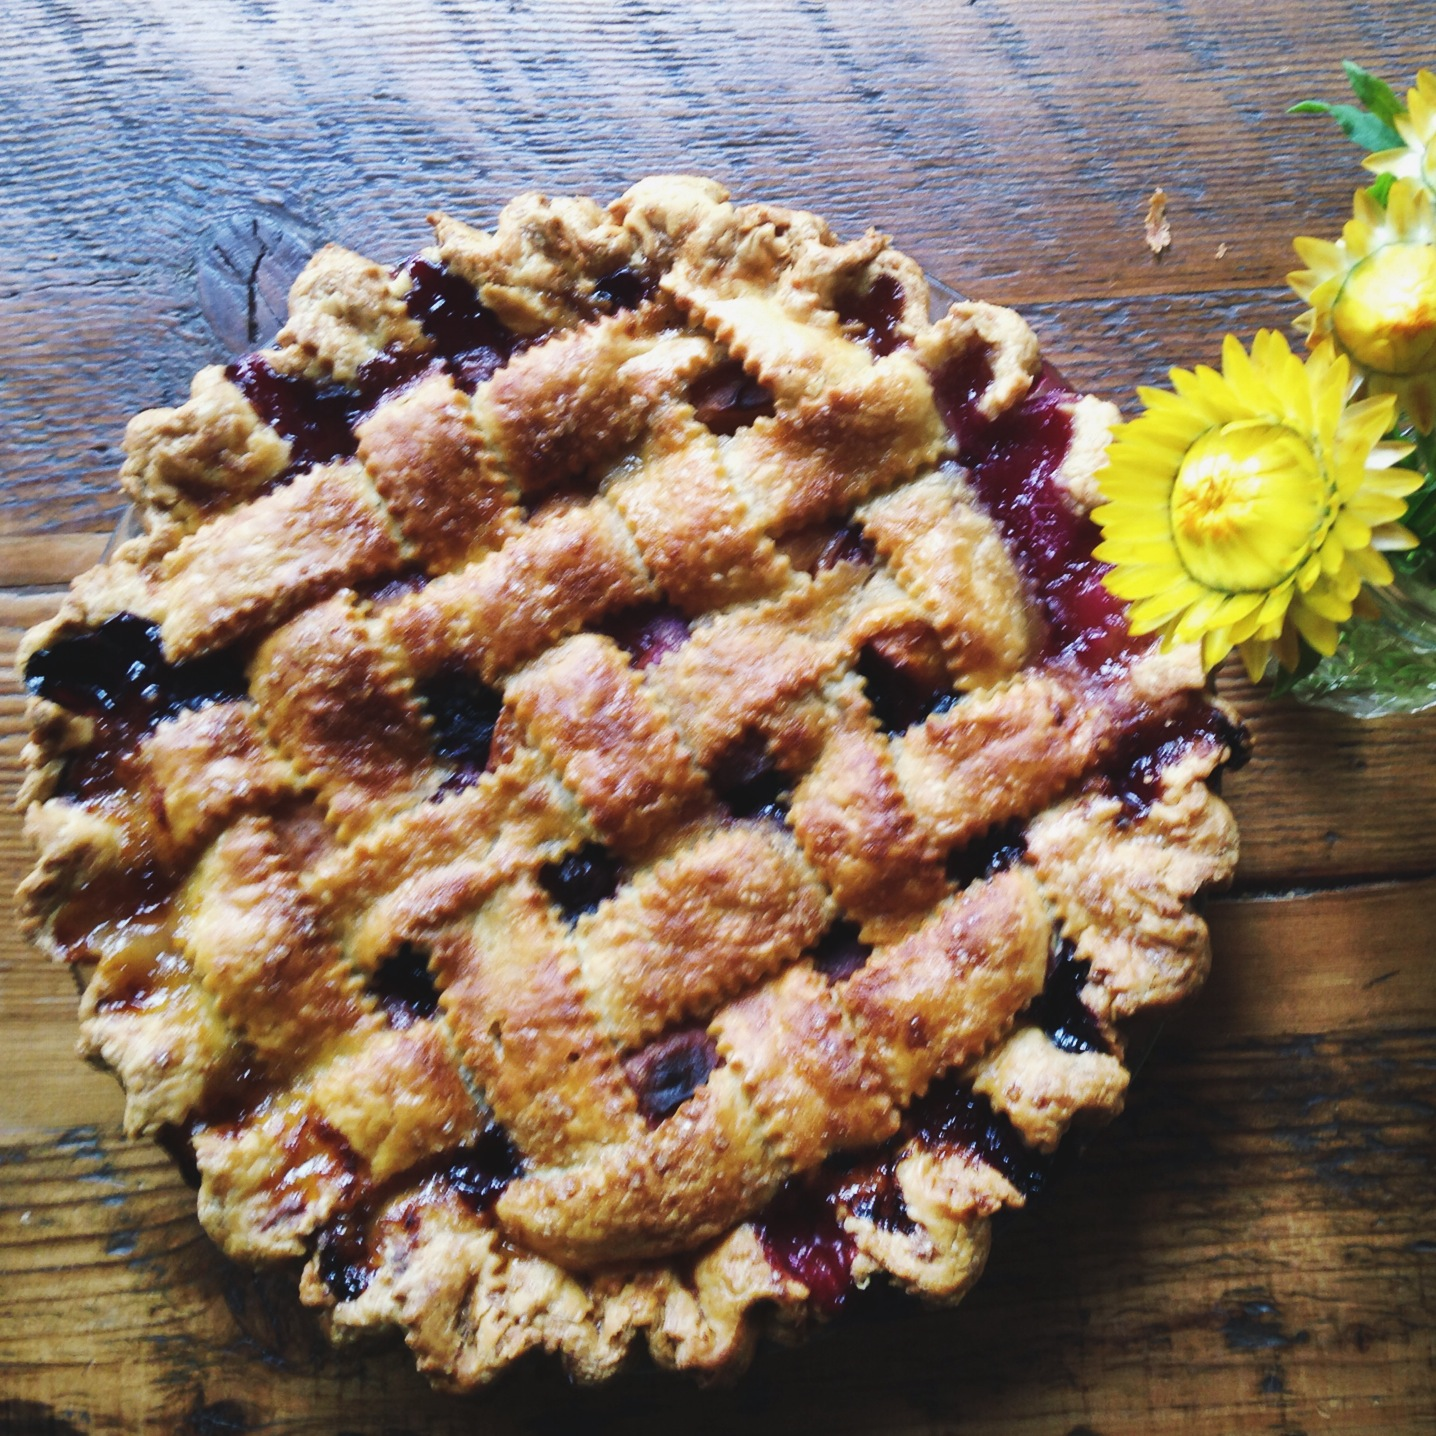 Lauretta Jean's Blueberry Apricot Pie